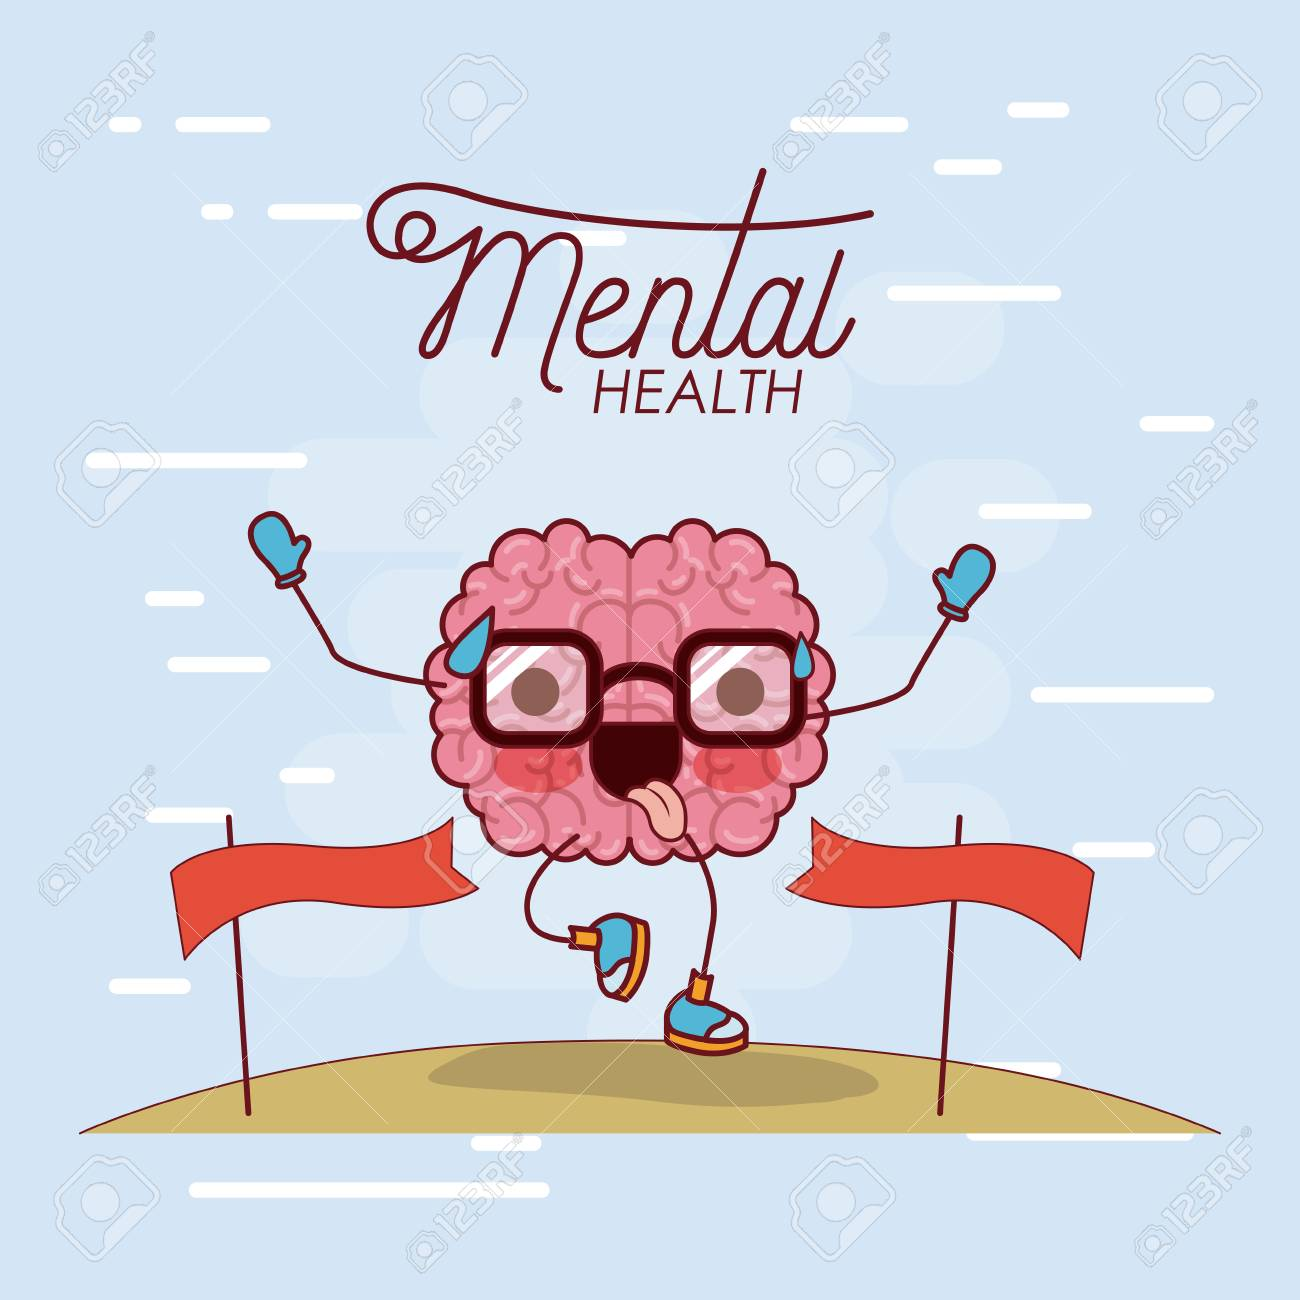 mental health poster of brain cartoon with glasses running and pass finishing line and background light blue vector illustration - 87119394